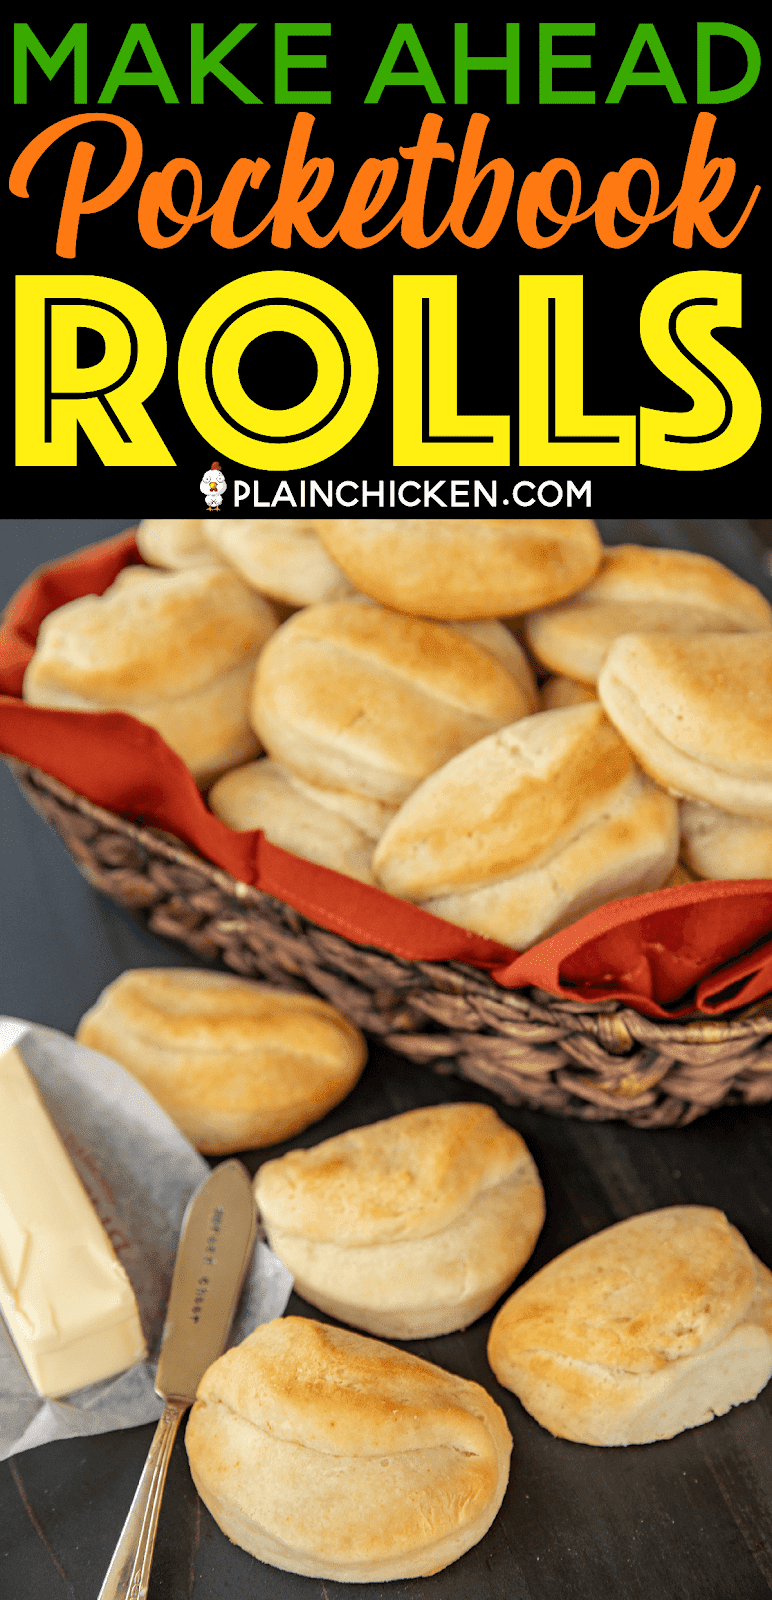 Make Ahead Pocketbook Rolls - dough will keep for 2 weeks in the refrigerator!! Great make ahead side for your holiday meals!!! SO light and fluffy. Yeast, water, self-rising flour, baking soda, sugar, shortening, buttermilk and melted butter. Everyone goes crazy over these yummy rolls. #rolls #bread #makeahead